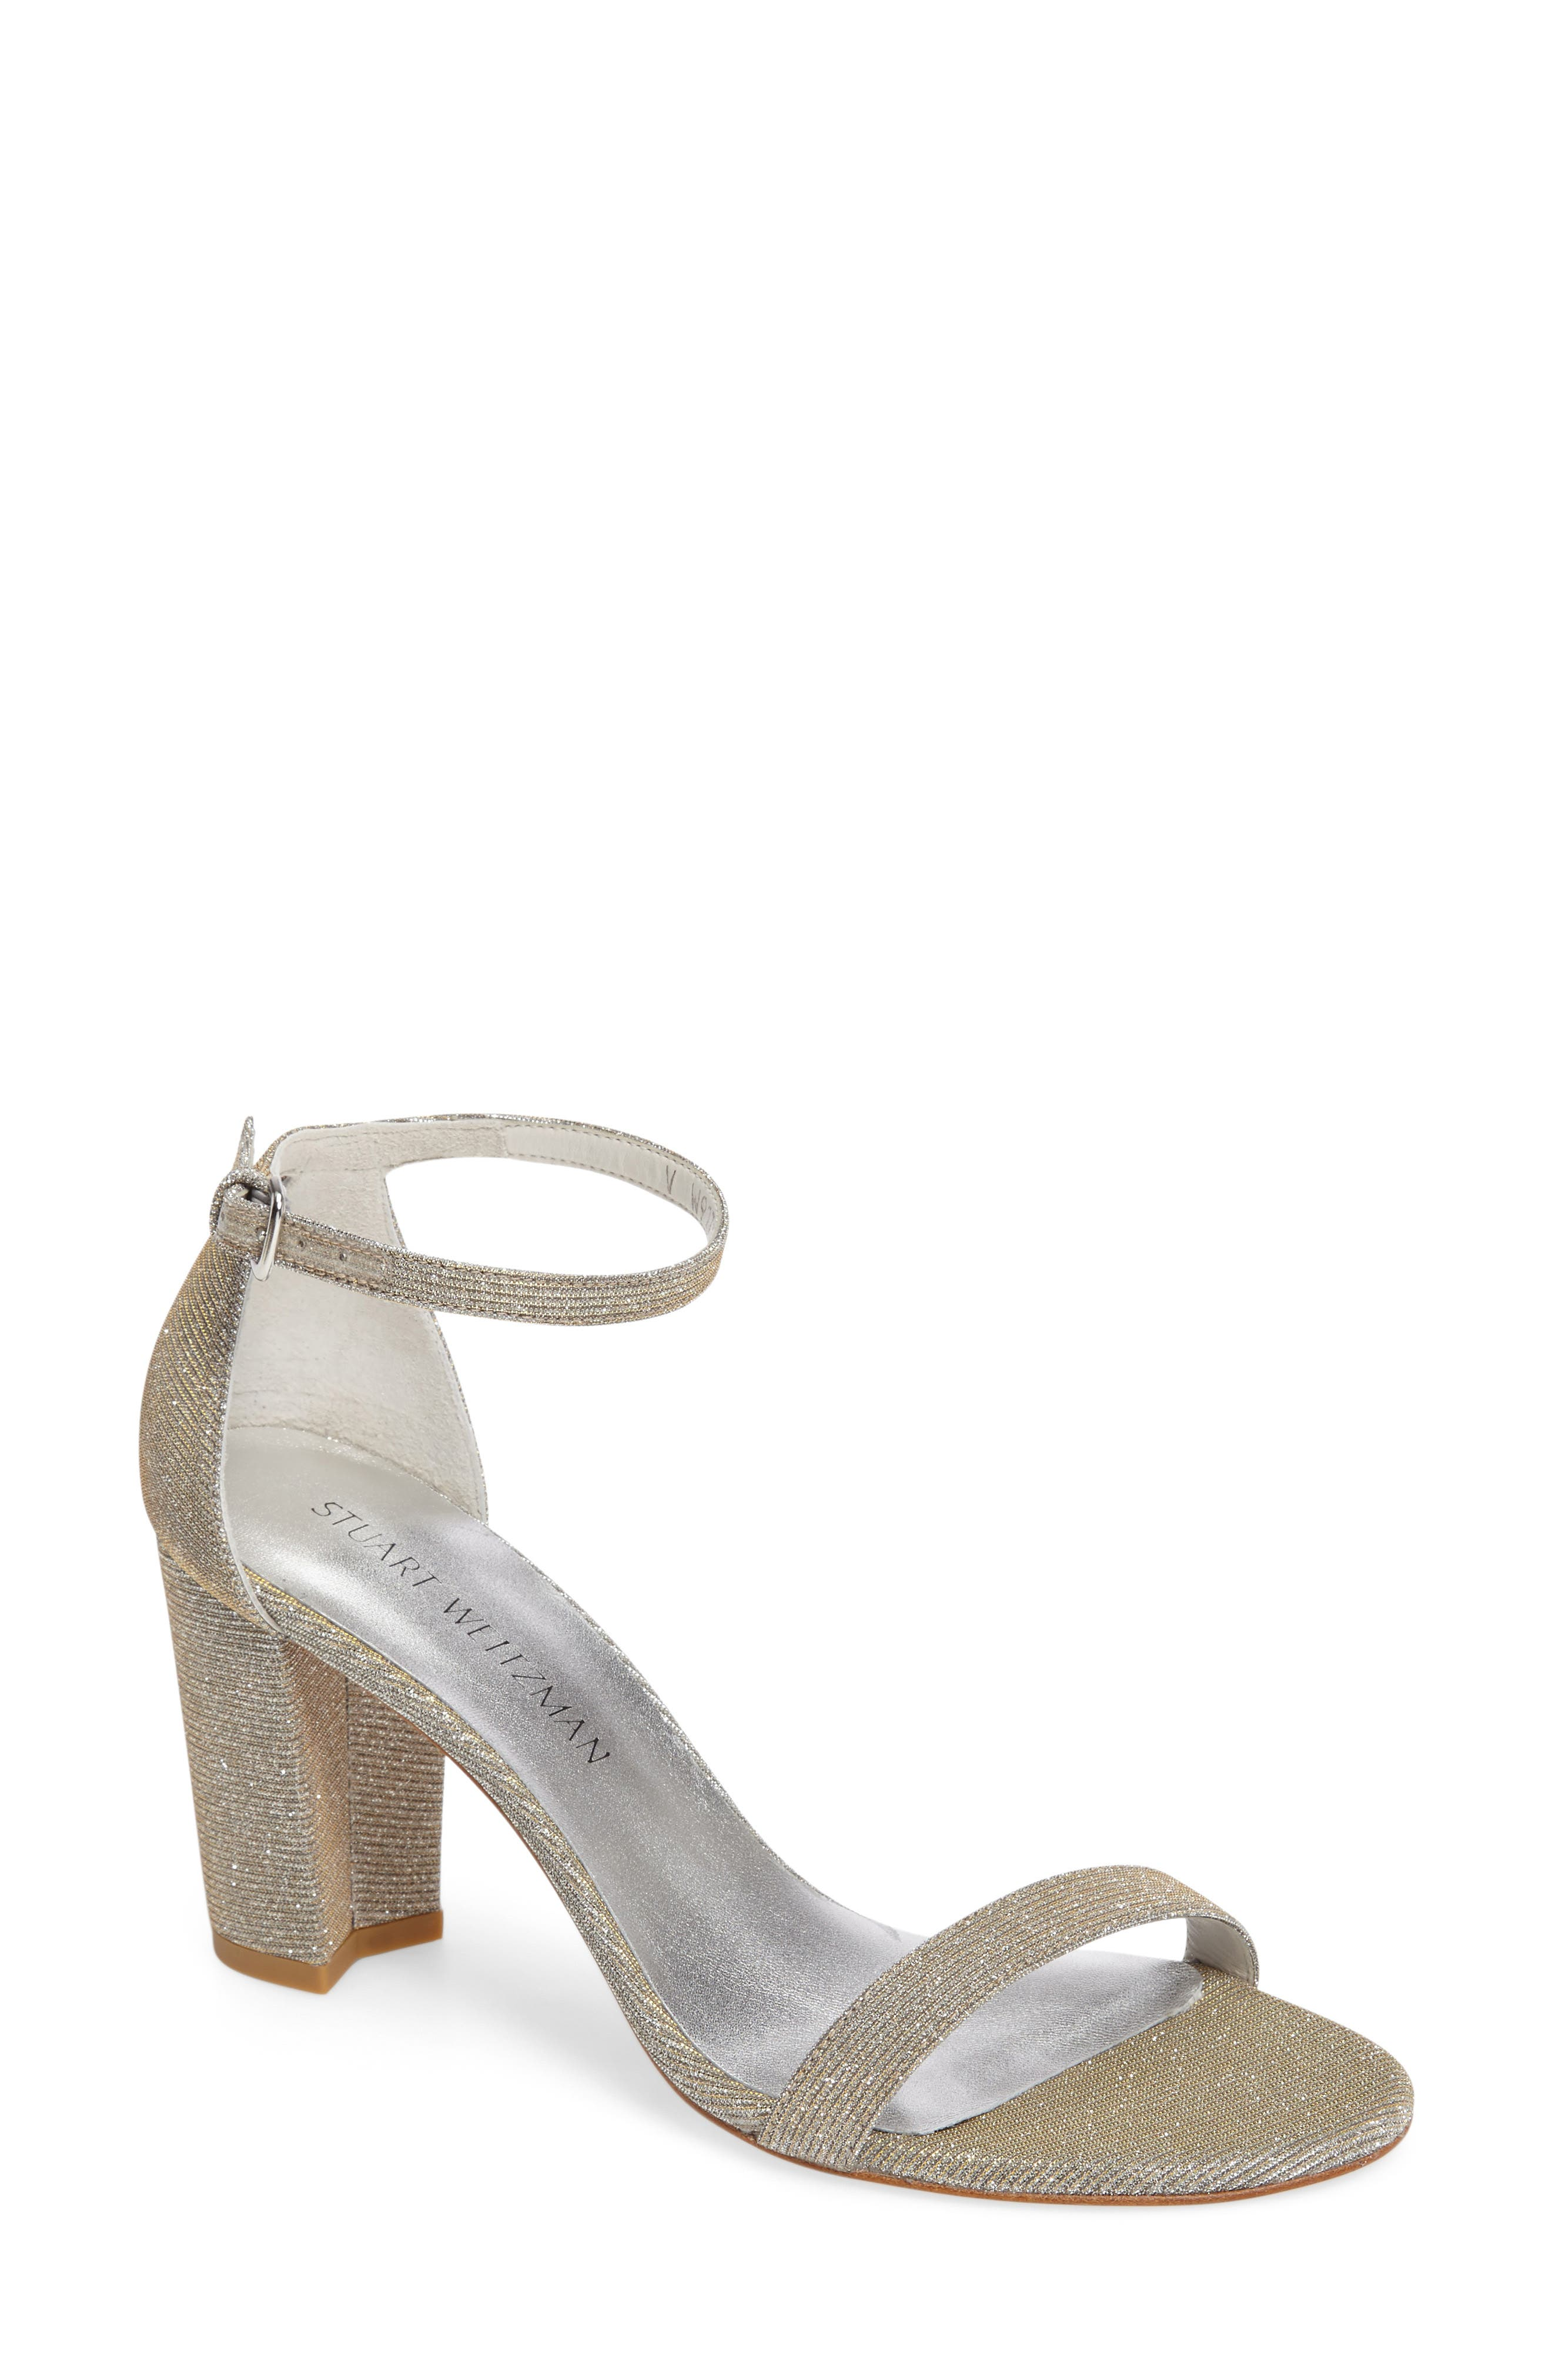 NearlyNude Ankle Strap Sandal,                             Main thumbnail 14, color,